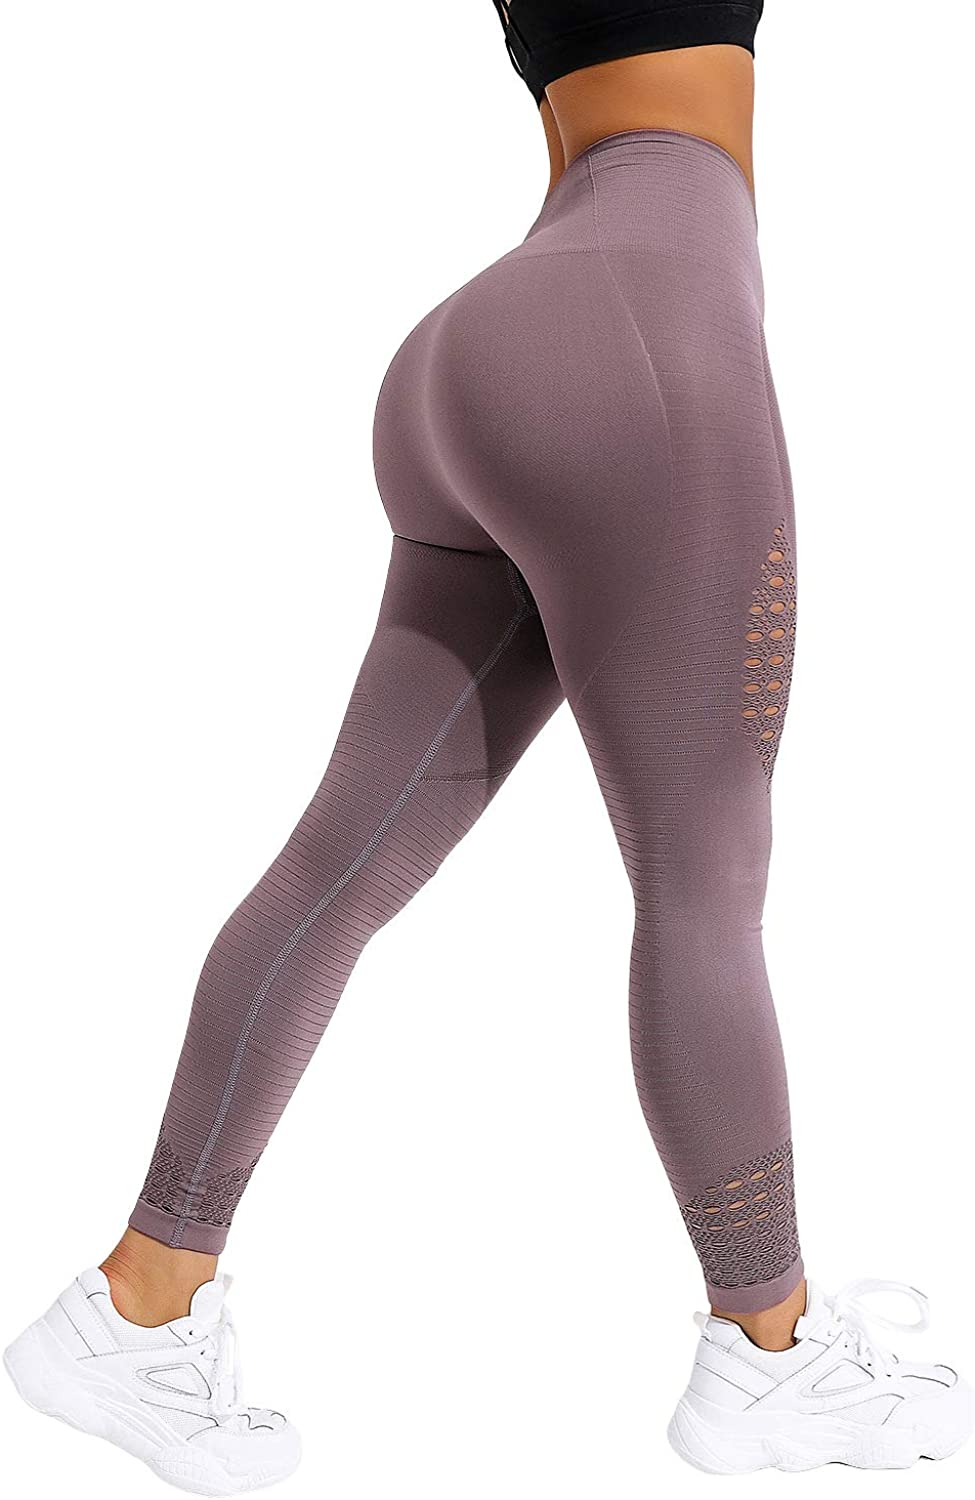 NORMOV Hollow Seamless Workout Gym Leggings for Women High Waist Compression Athletic Yoga Leggings